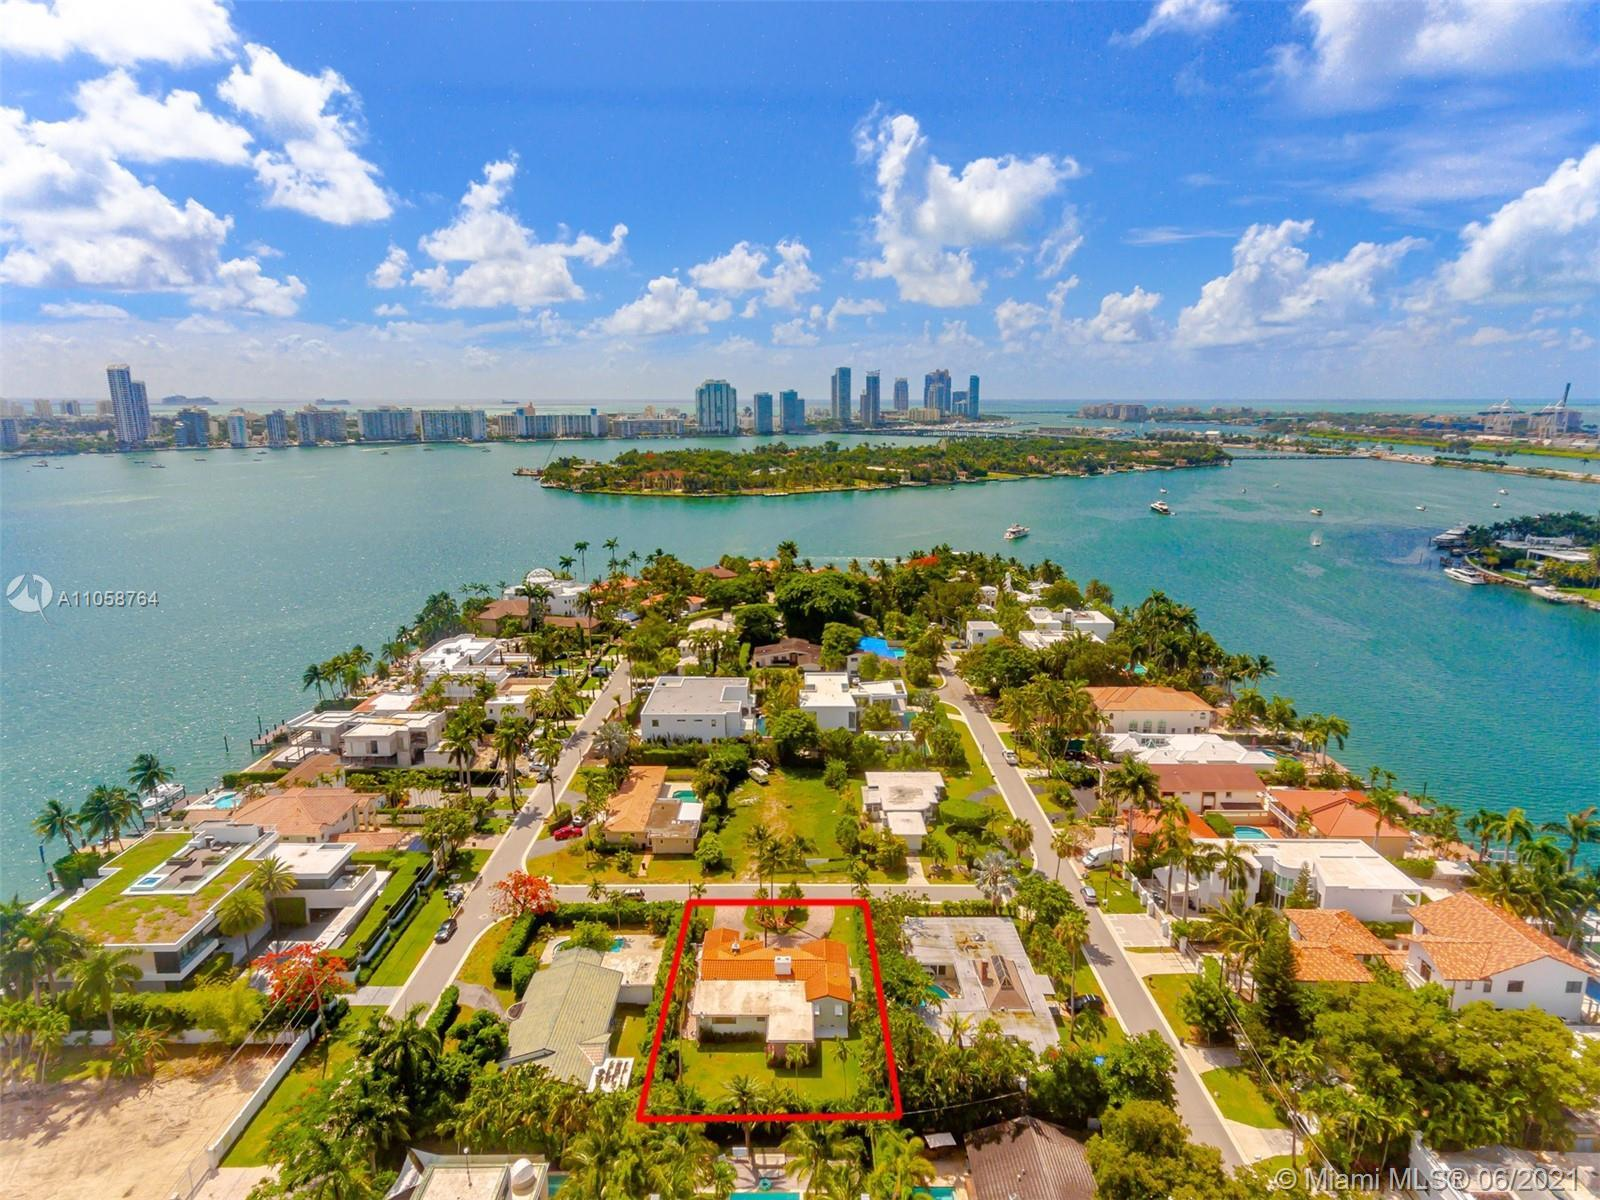 Hibiscus Island is one of the most exclusive and private islands in Miami Beach - conveniently locat